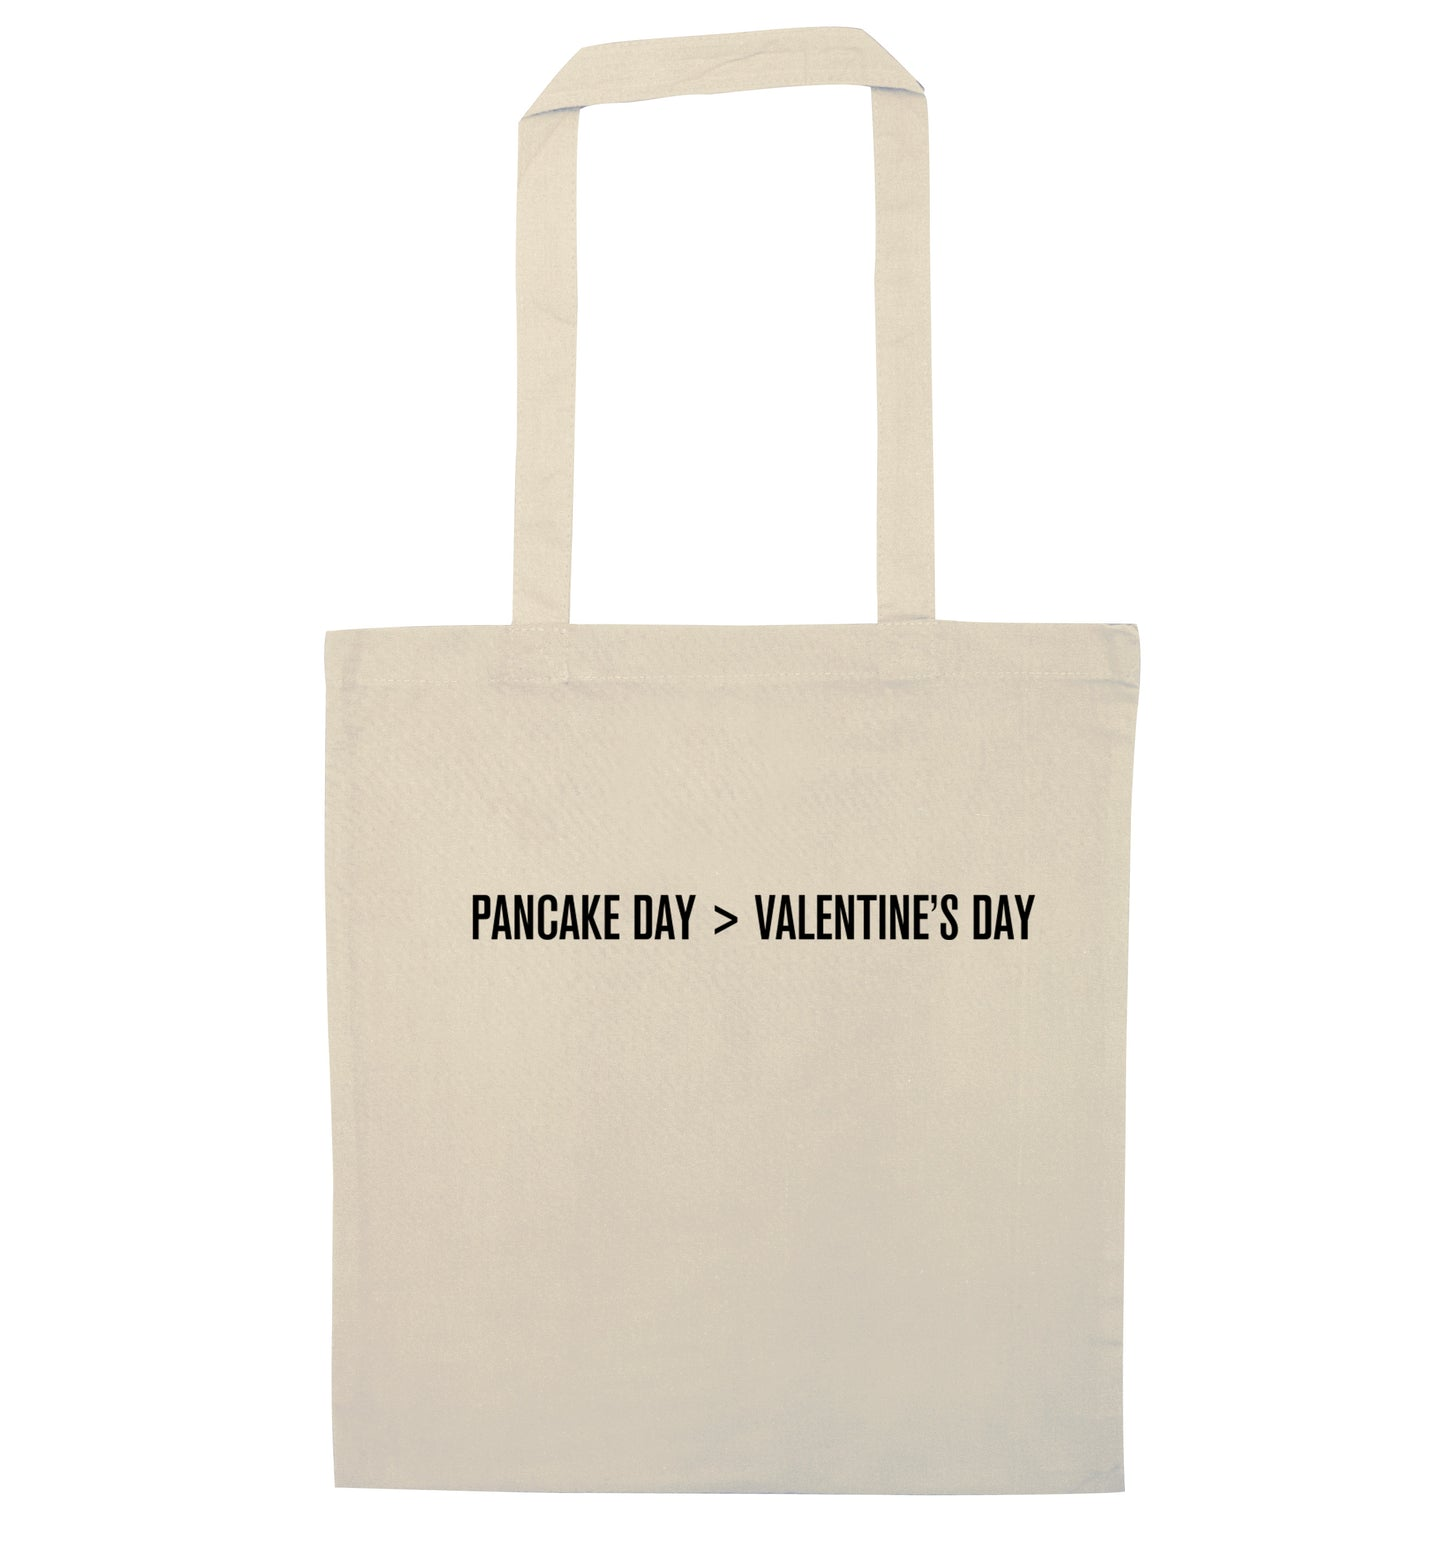 Valentine's day > pancake day natural tote bag